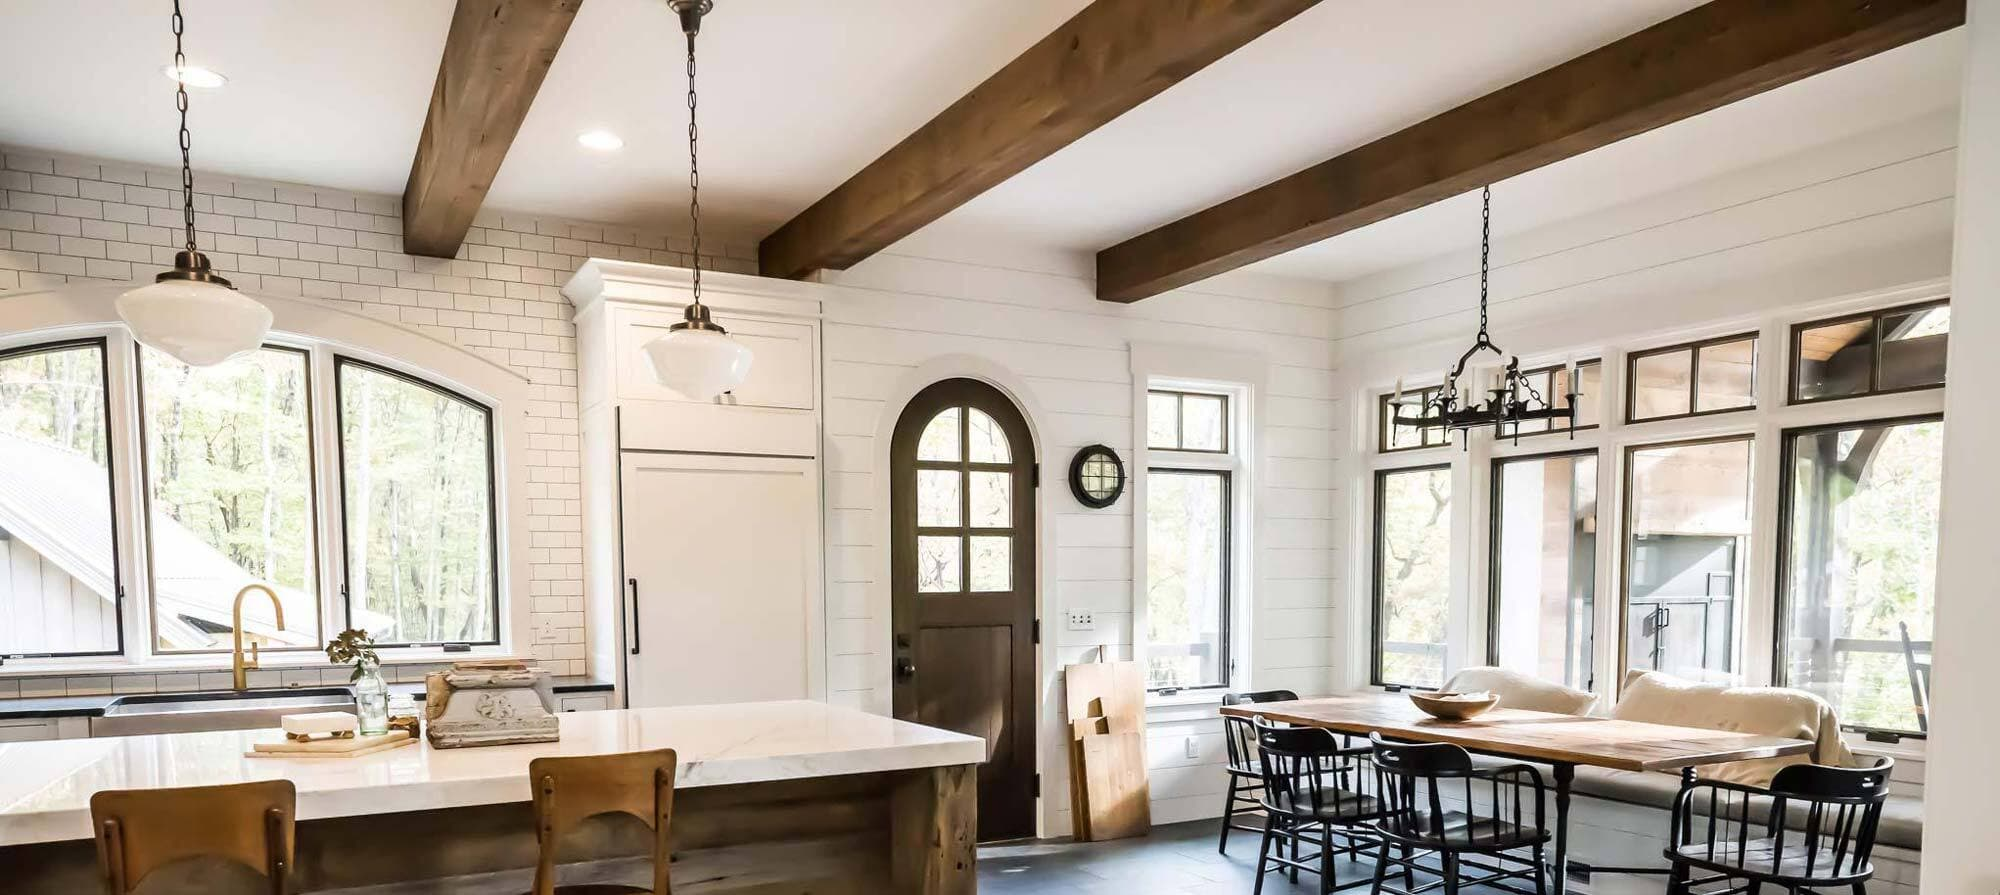 Stunning rustic reclaimed ceiling beams in kitchen.